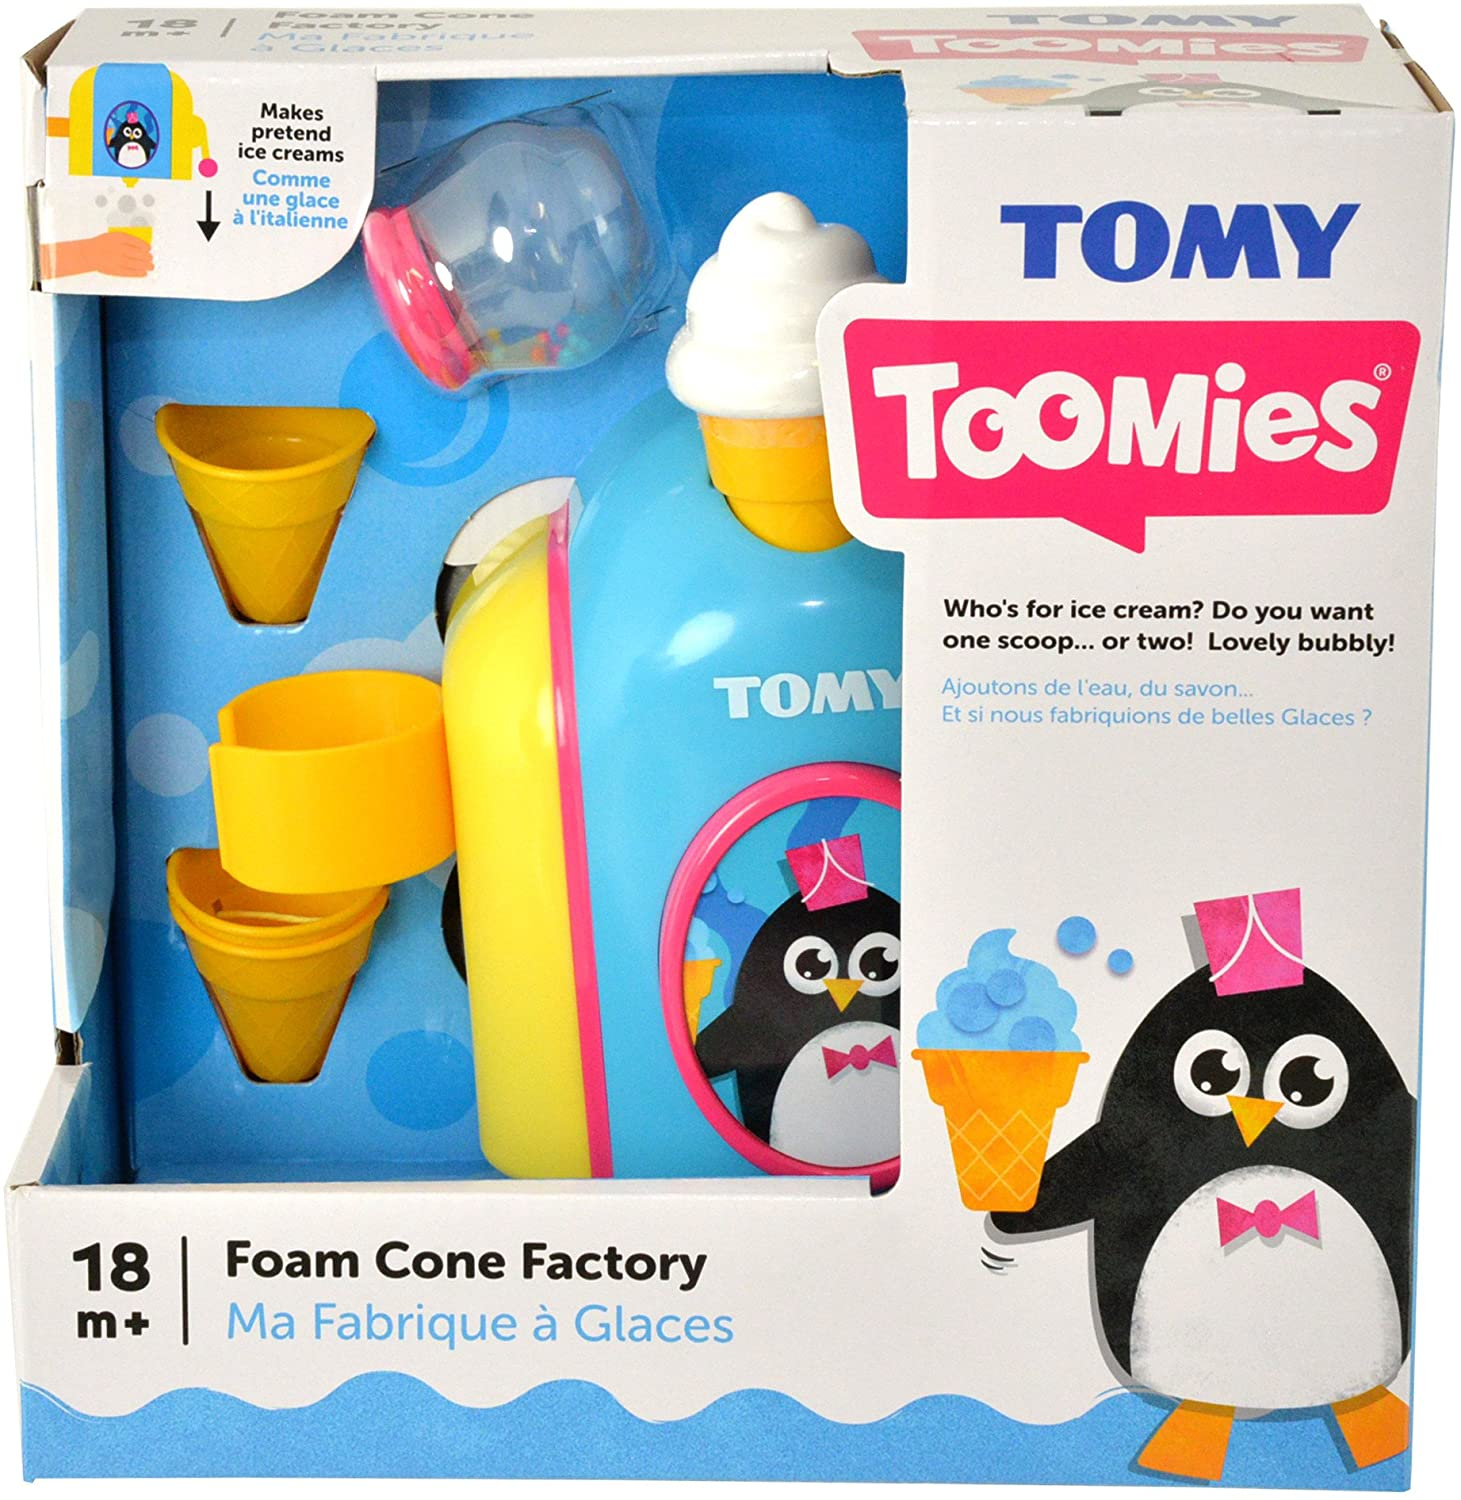 TOMY Toomies Foam Cone Factory Baby Bath Toy